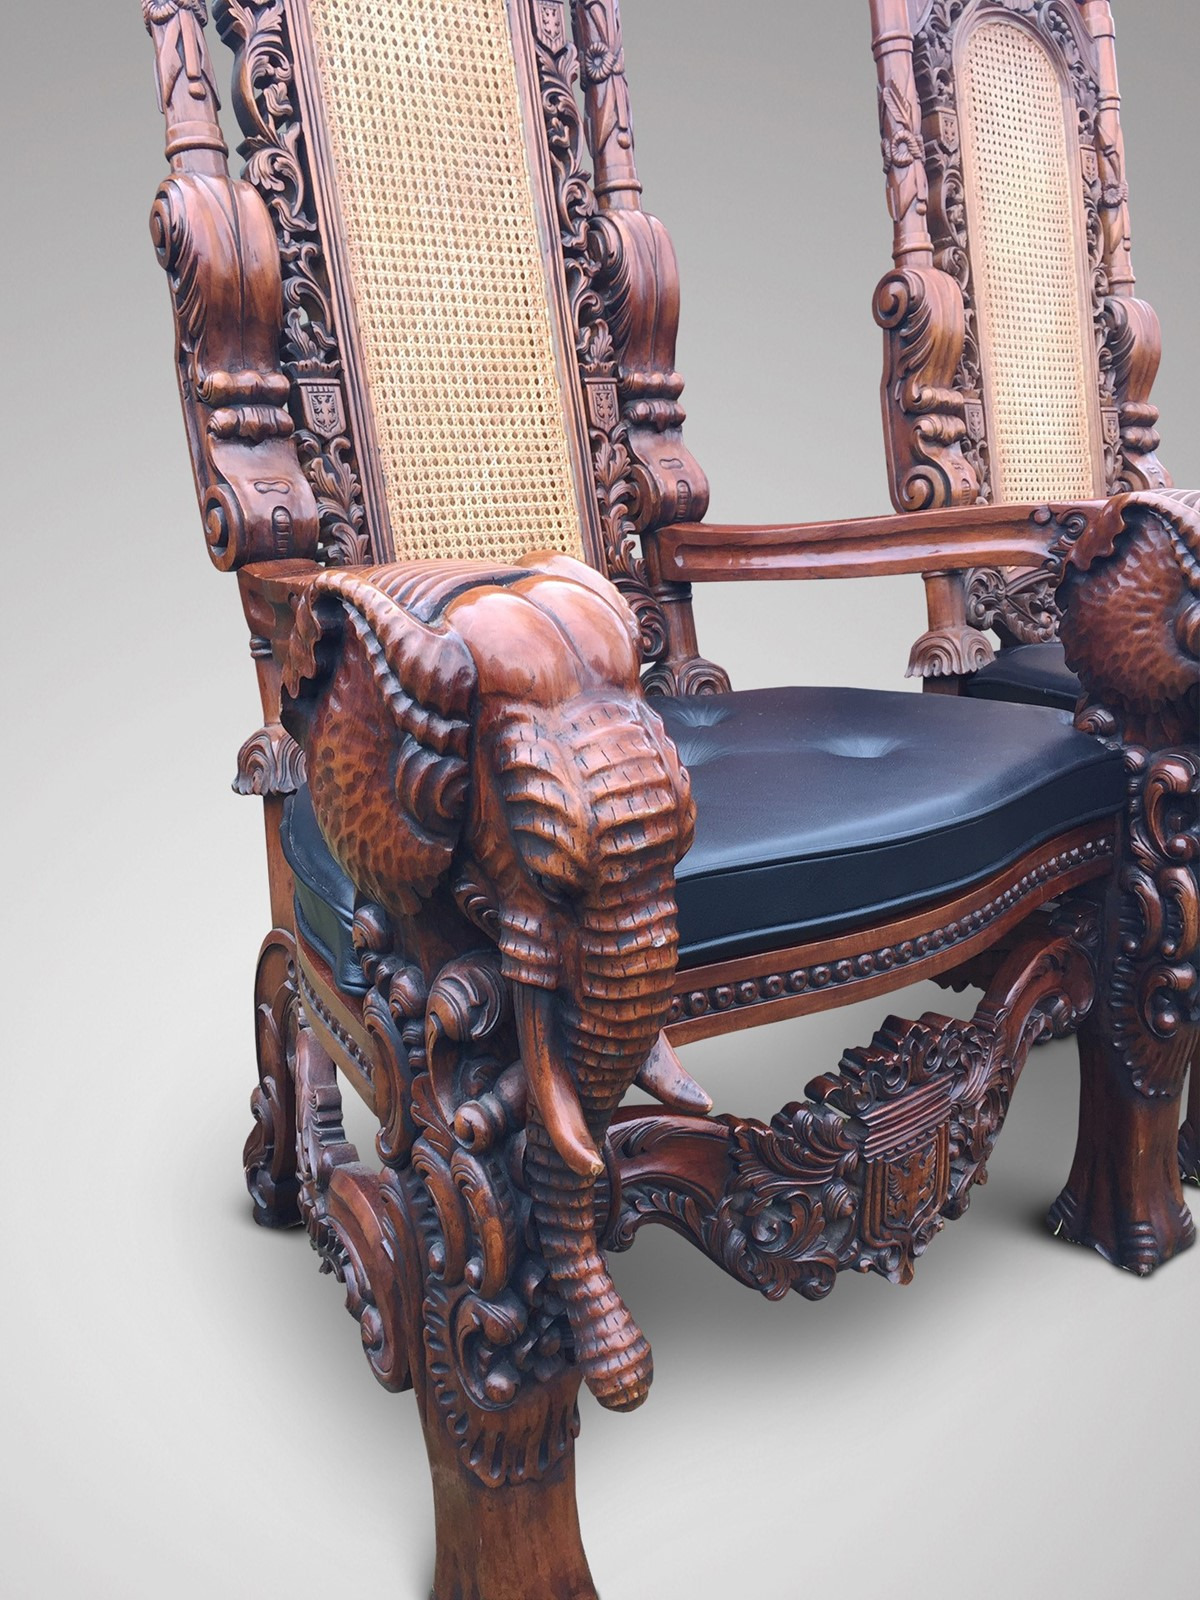 Antique Furniture Buyers Directory Inspirational Pair Of Carved Elephant Throne Chairs Decorative Collective